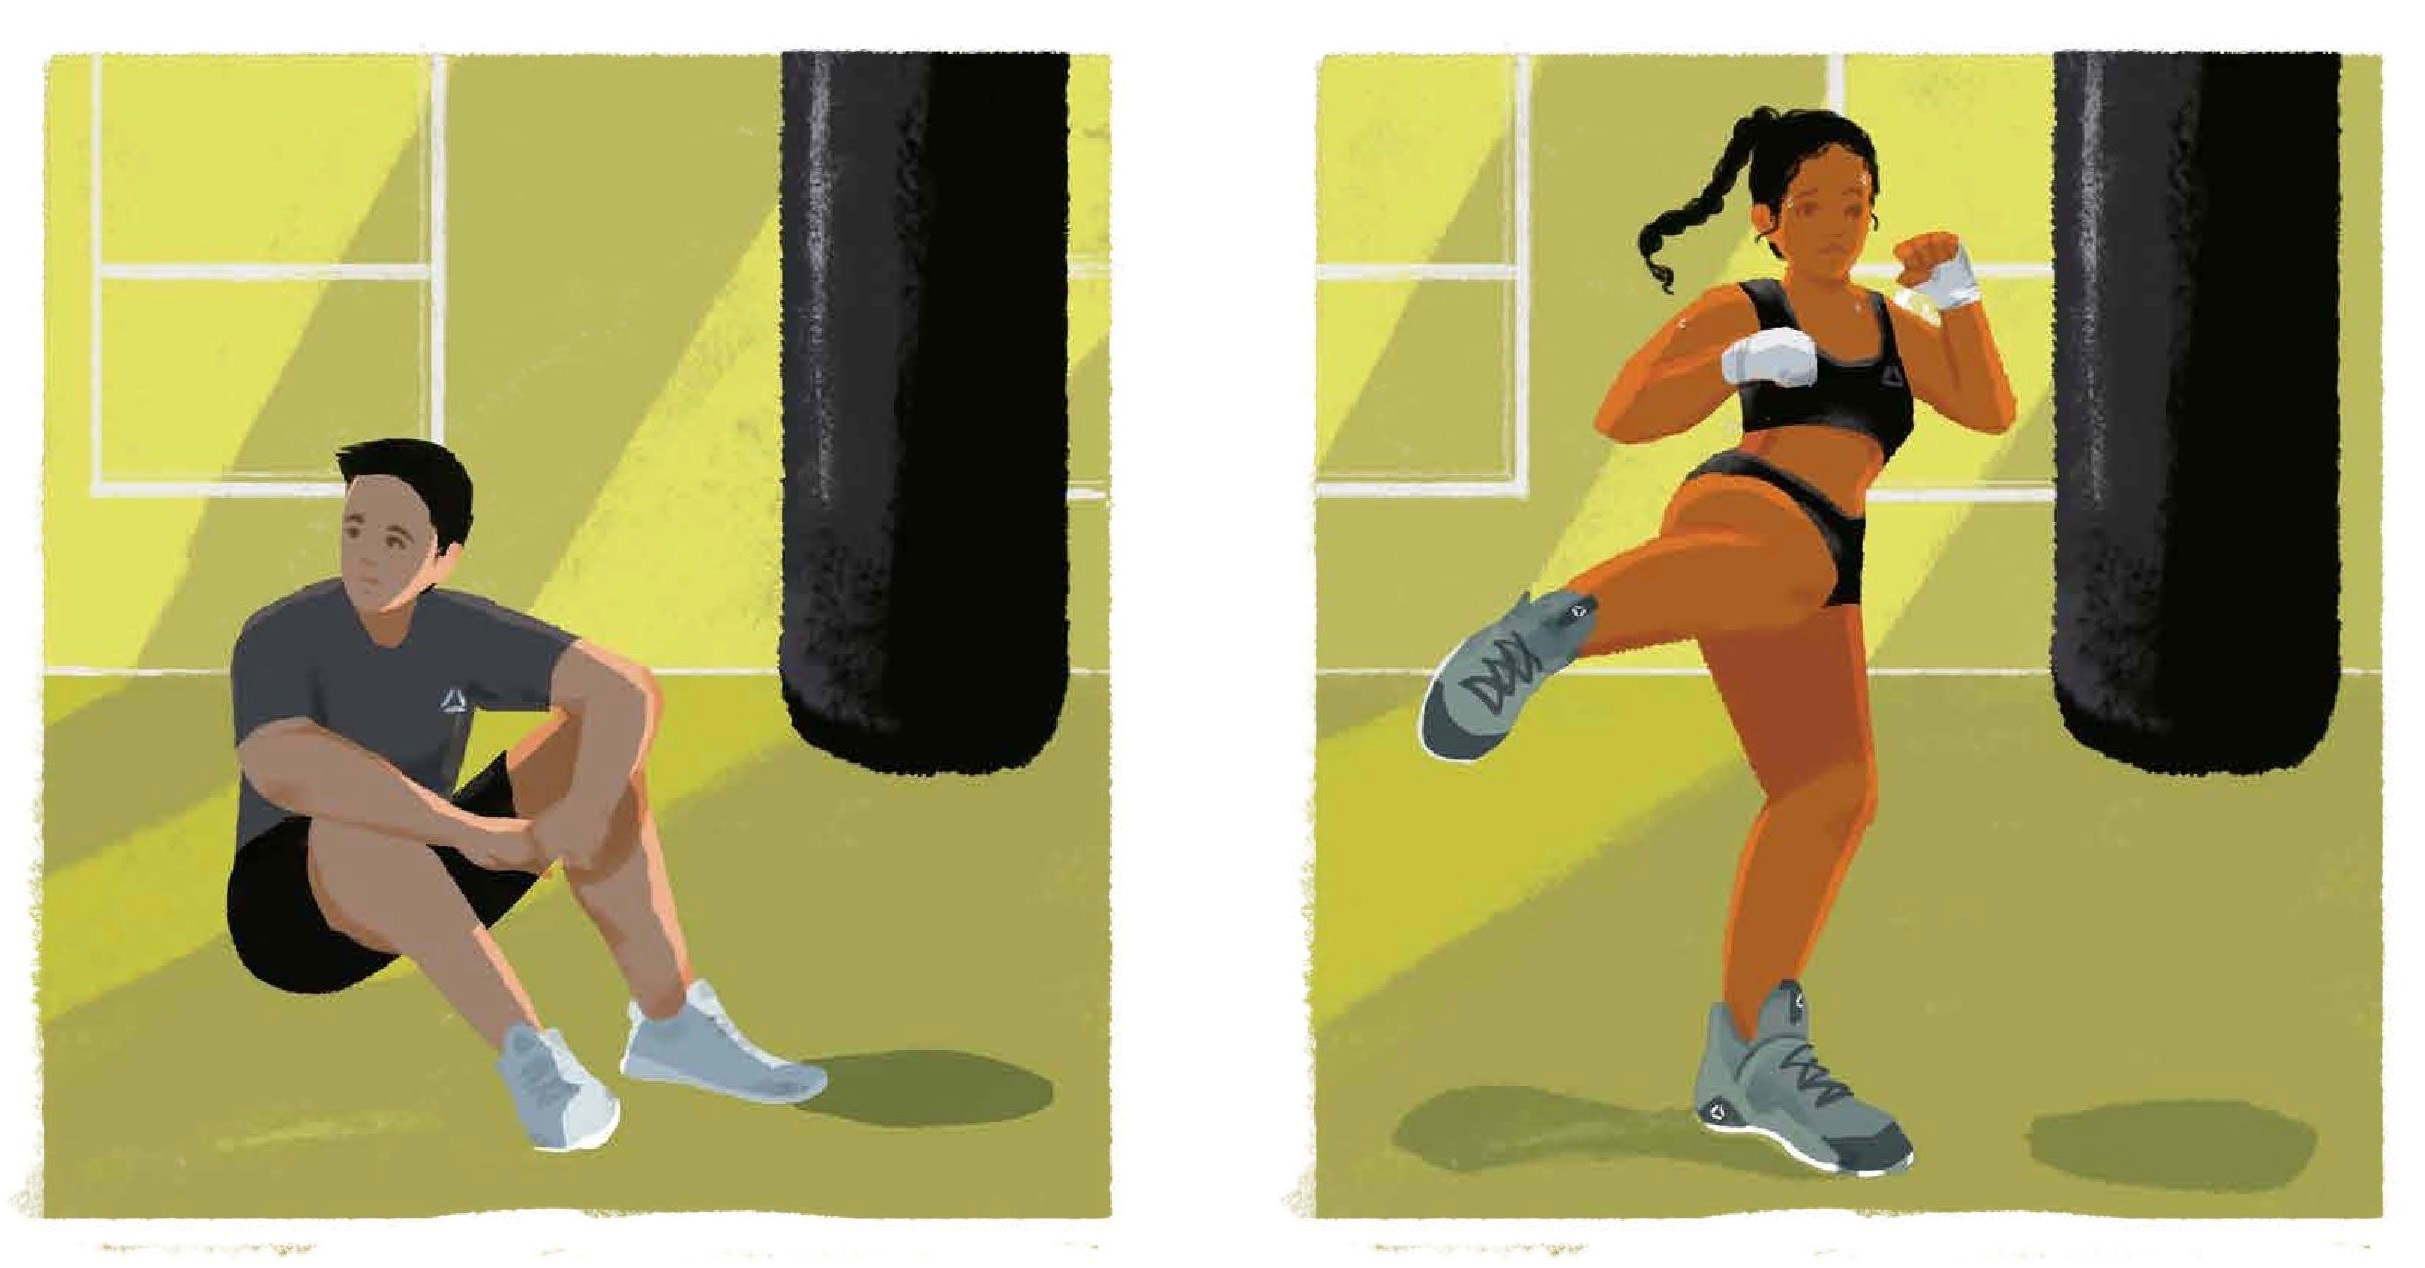 noble-trainer-illustrations-boxing